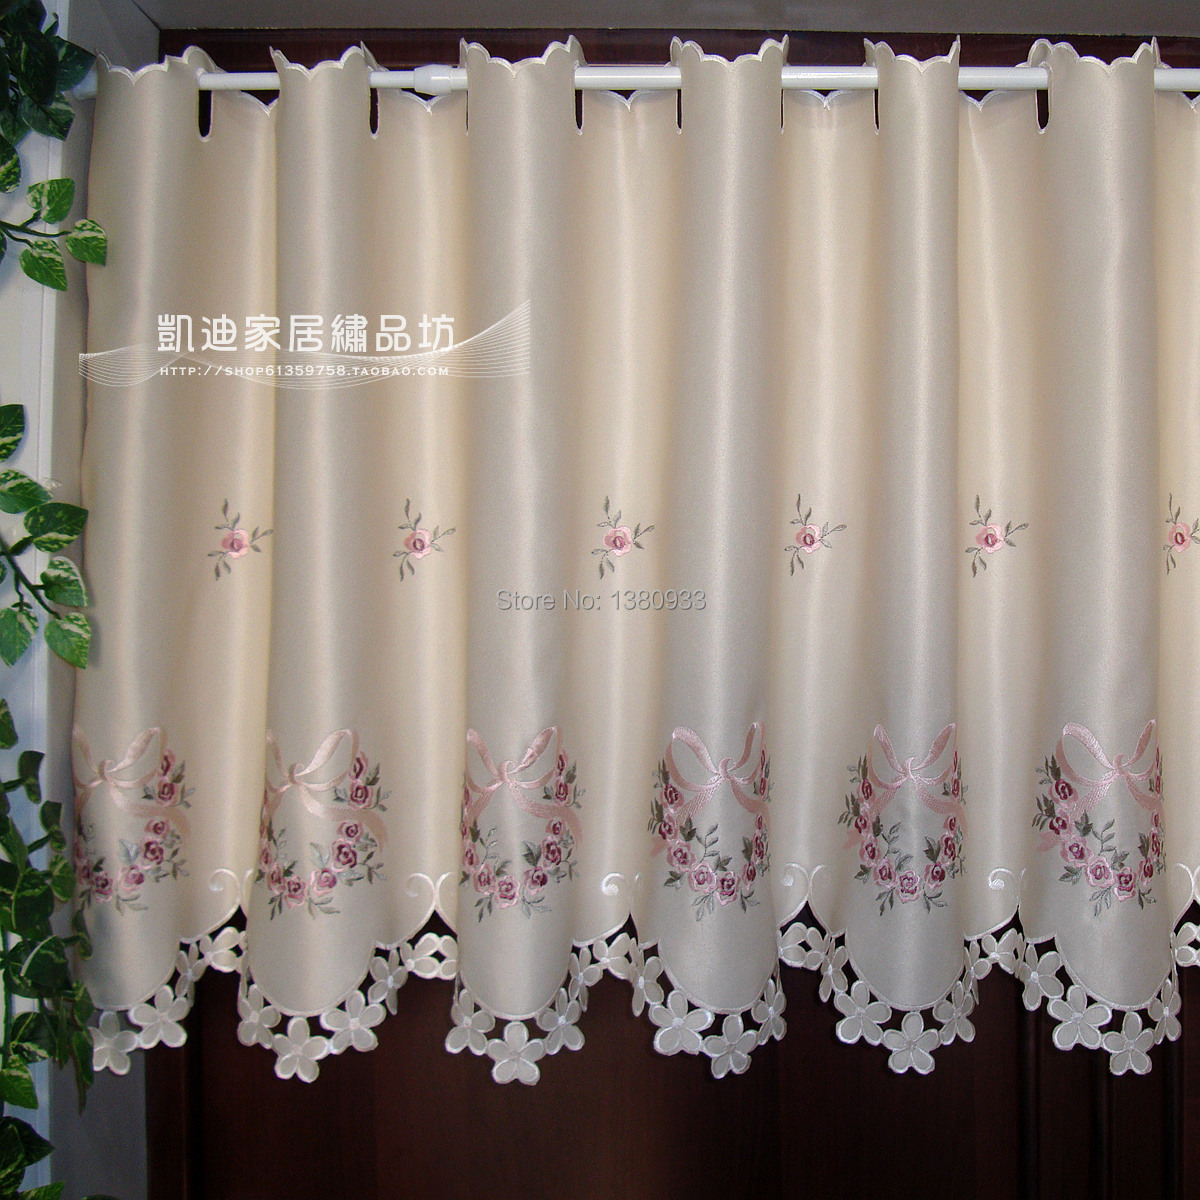 New-window-curtains-free-shipping-semi-shade-embroidery ...